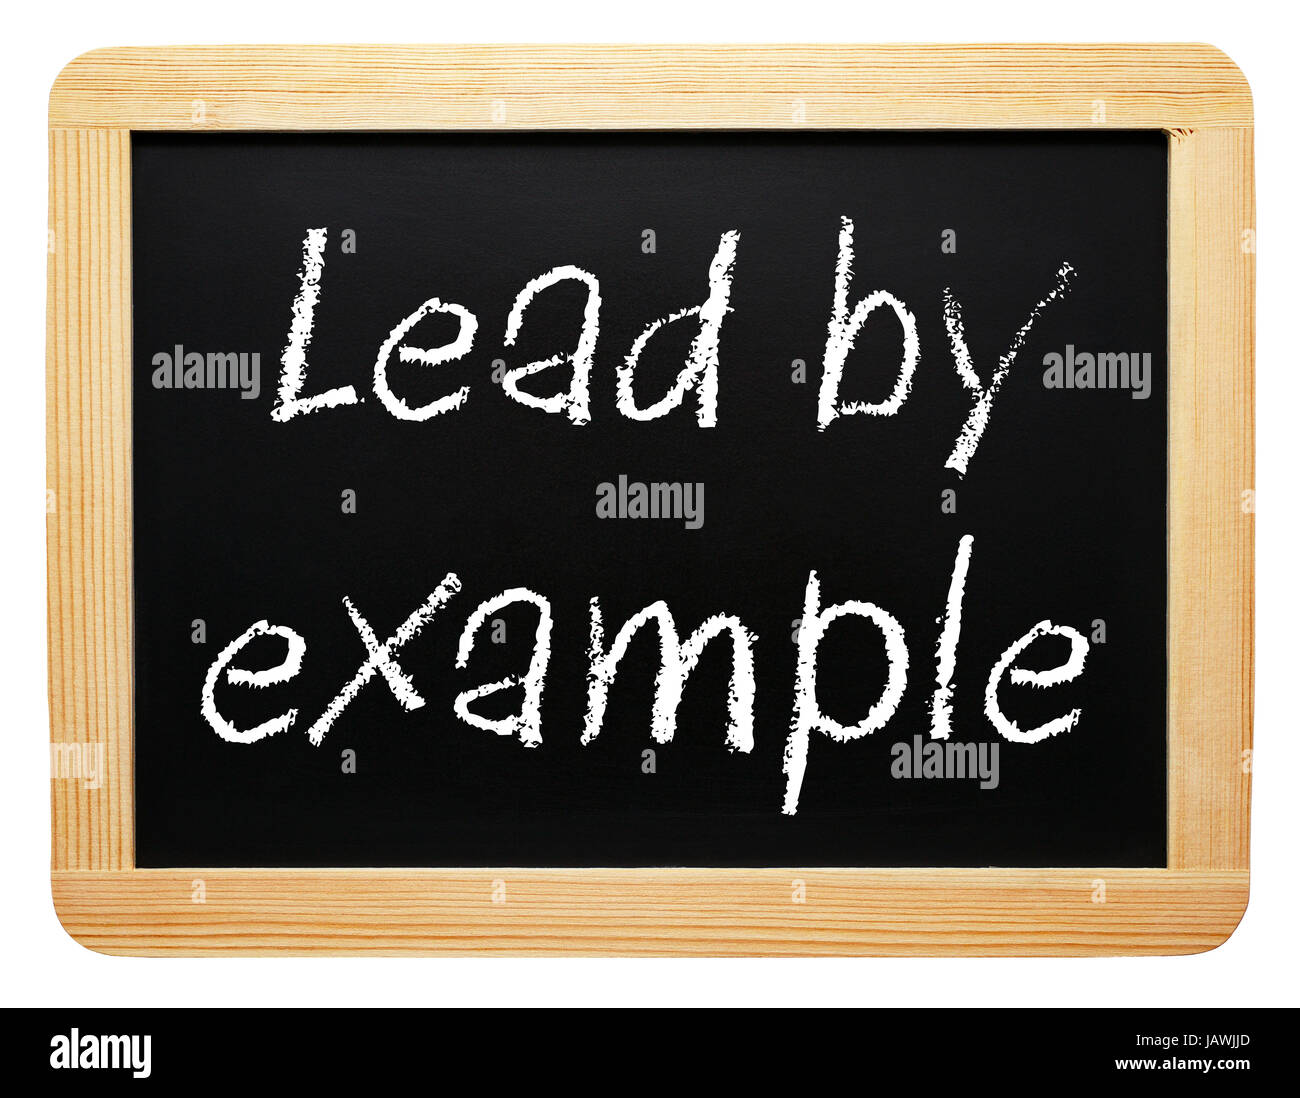 lead by example cut out stock images & pictures - alamy